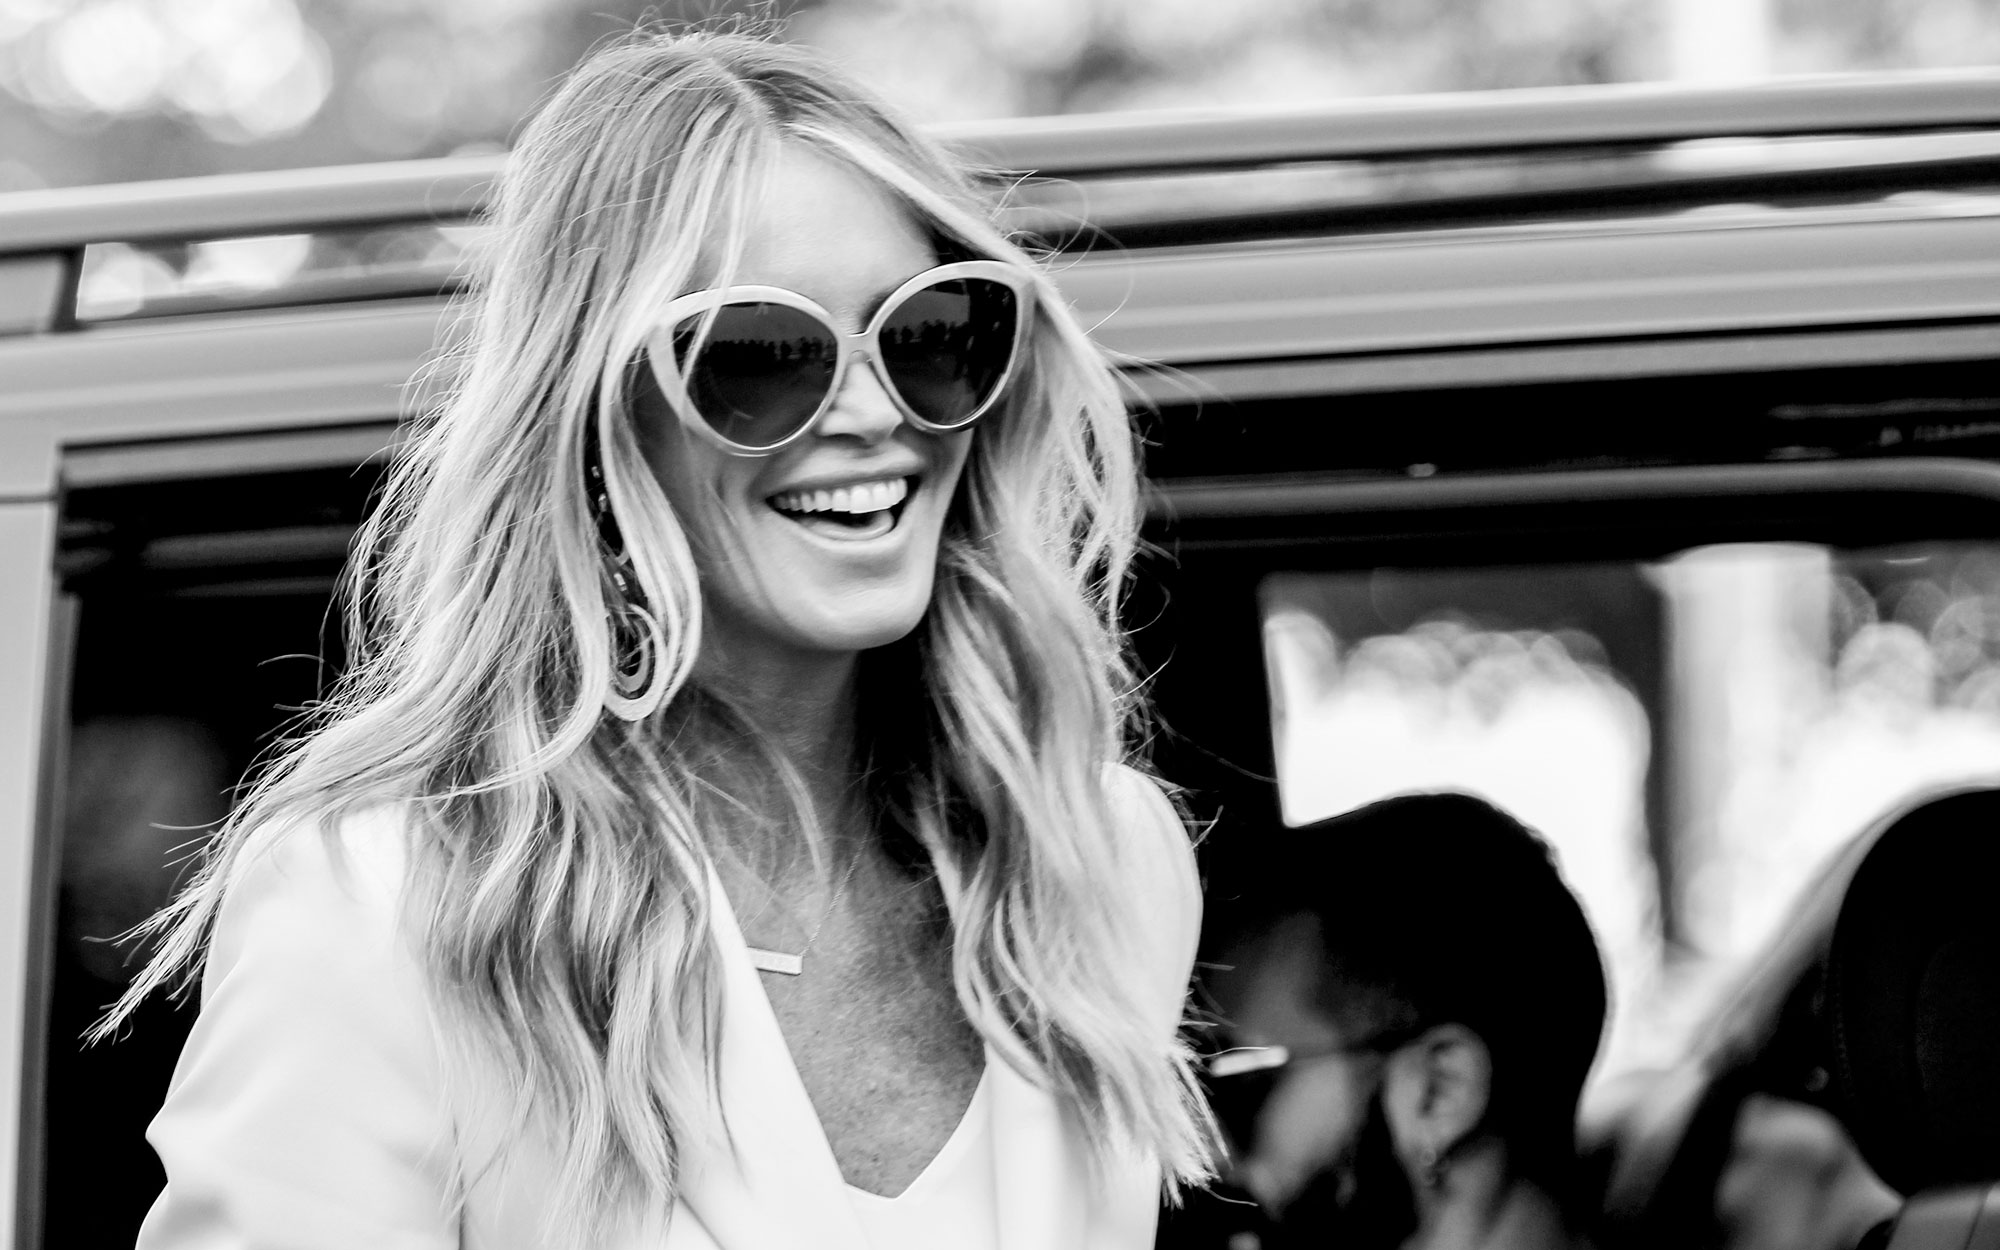 How to Travel Like Elle Macpherson